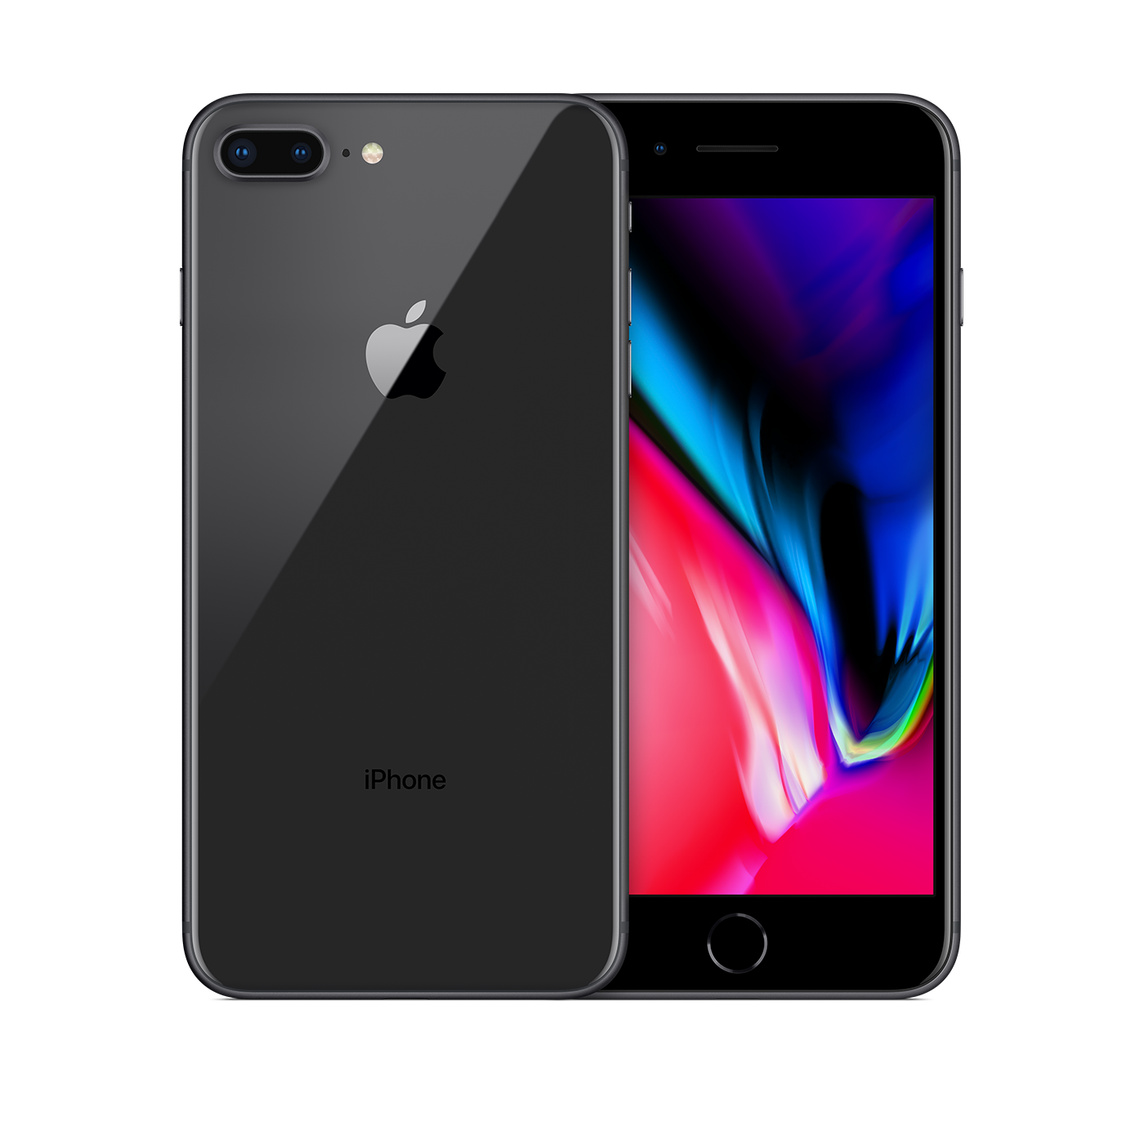 79ea62ec661c3 Refurbished iPhone 8 Plus 64GB - Space Gray (Unlocked) - Apple